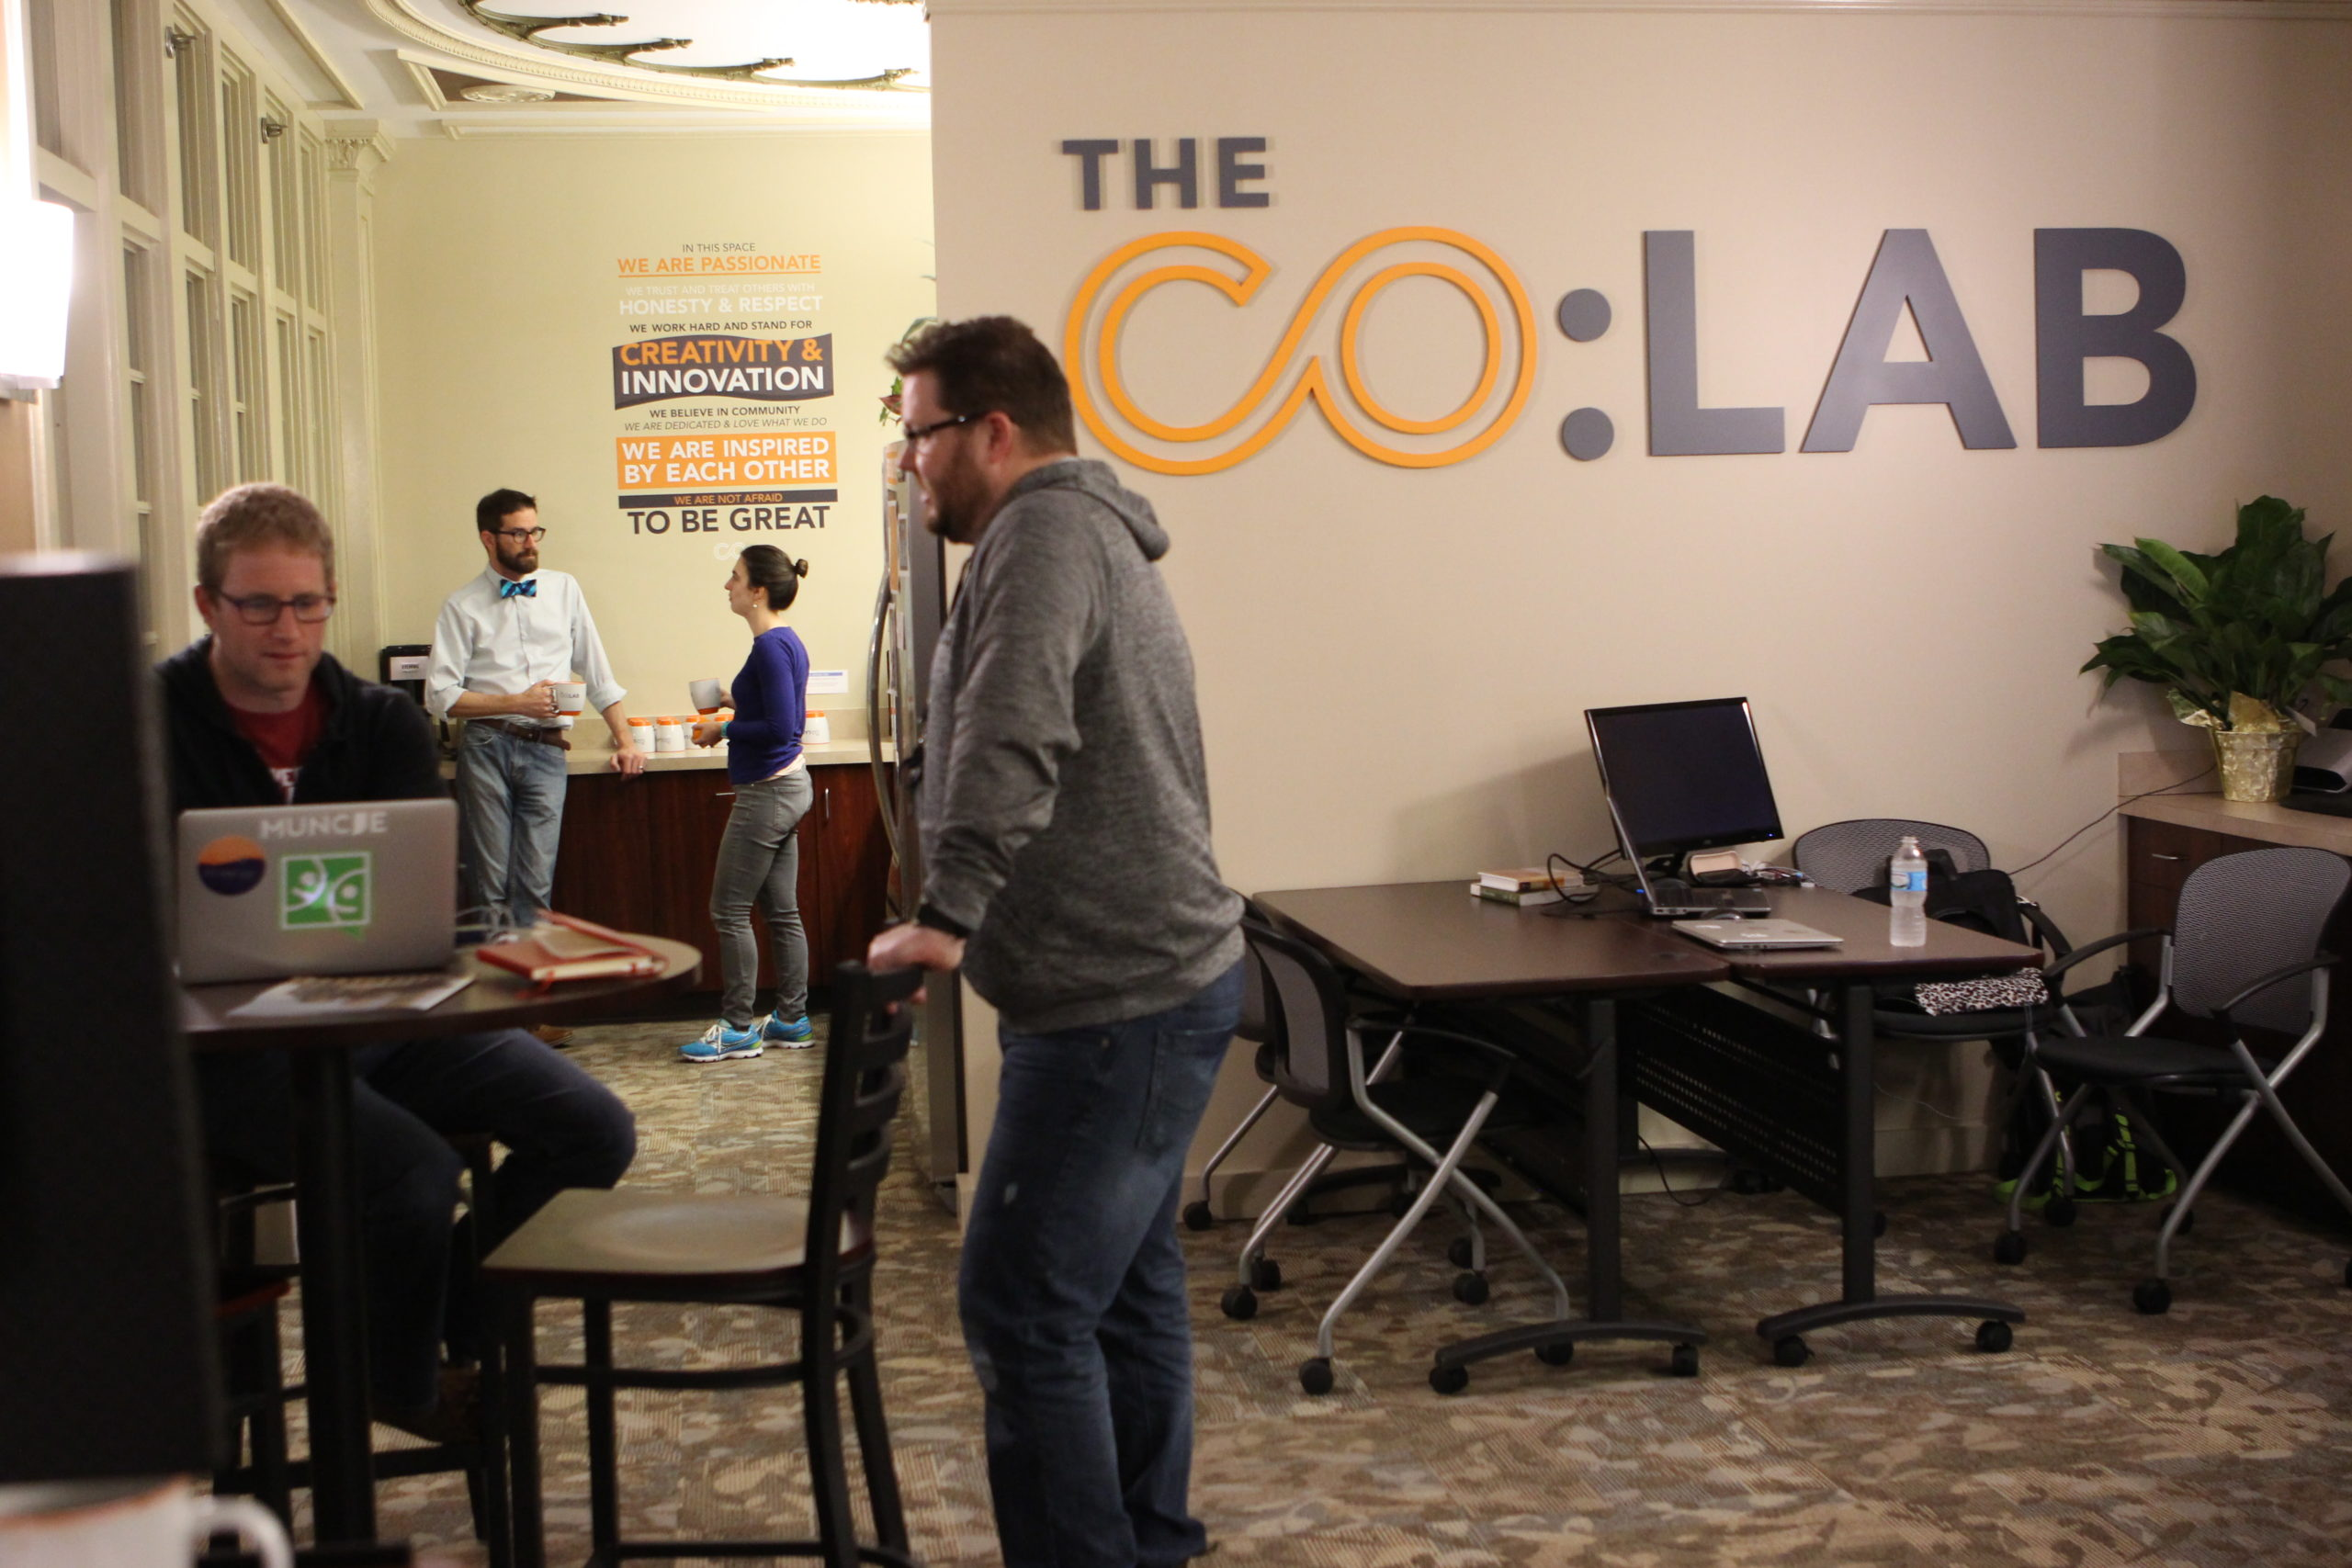 Entrepreneurs making connections at the Co Lab in muncie